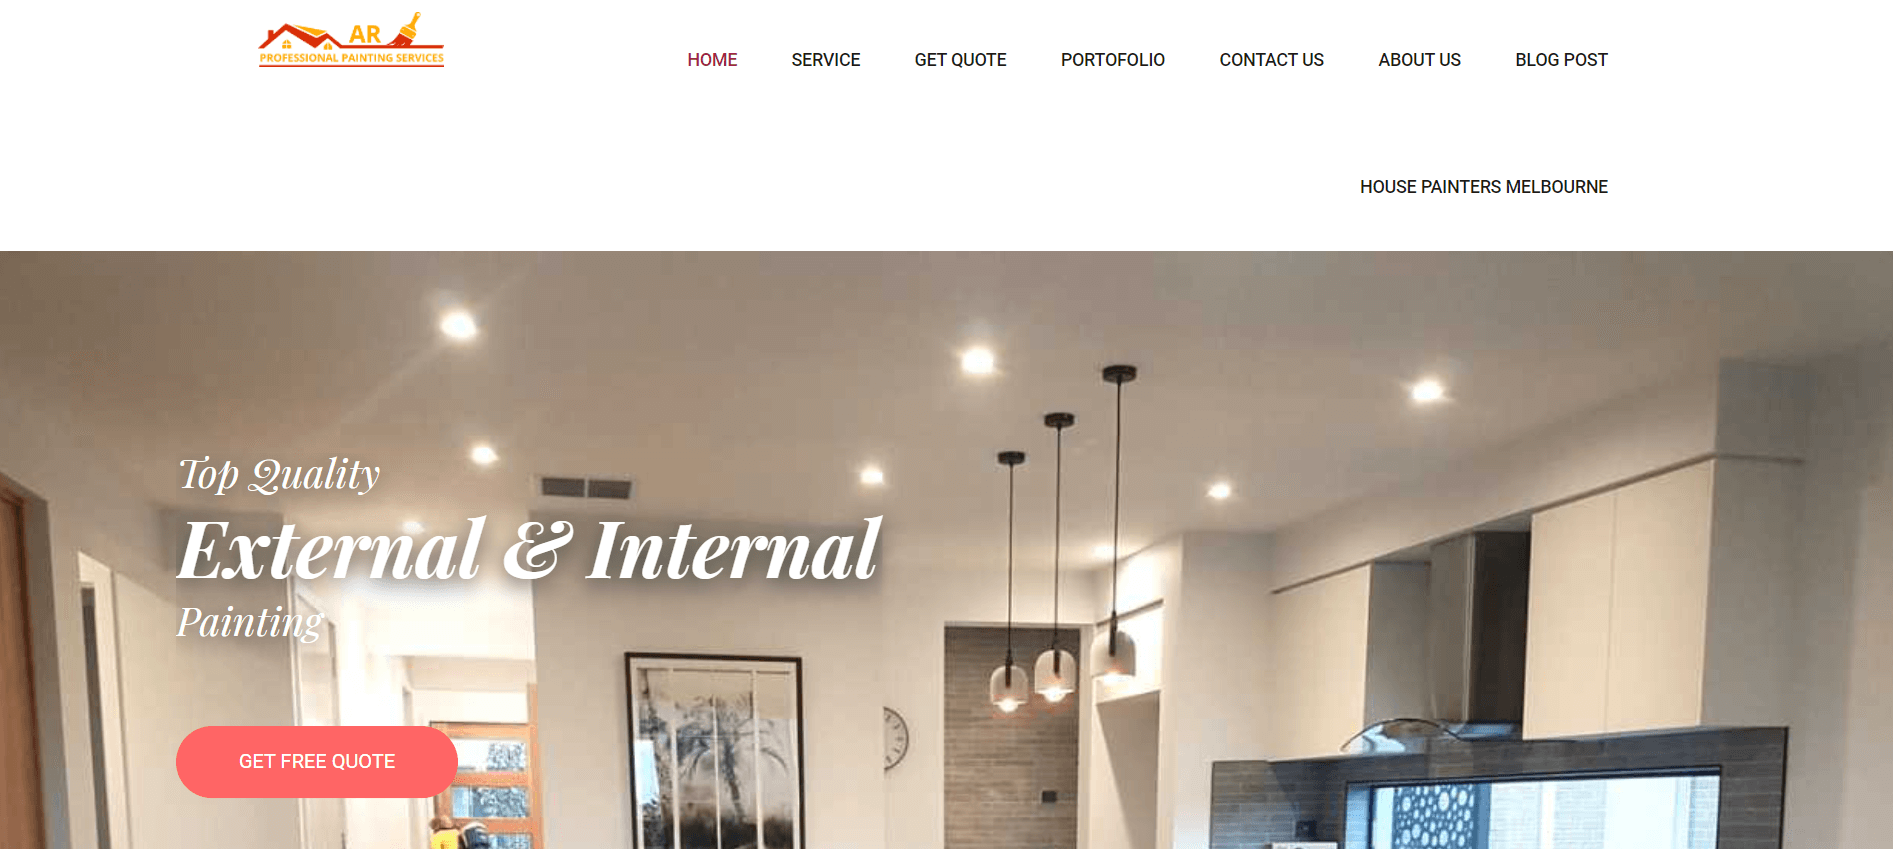 ar professional painting services